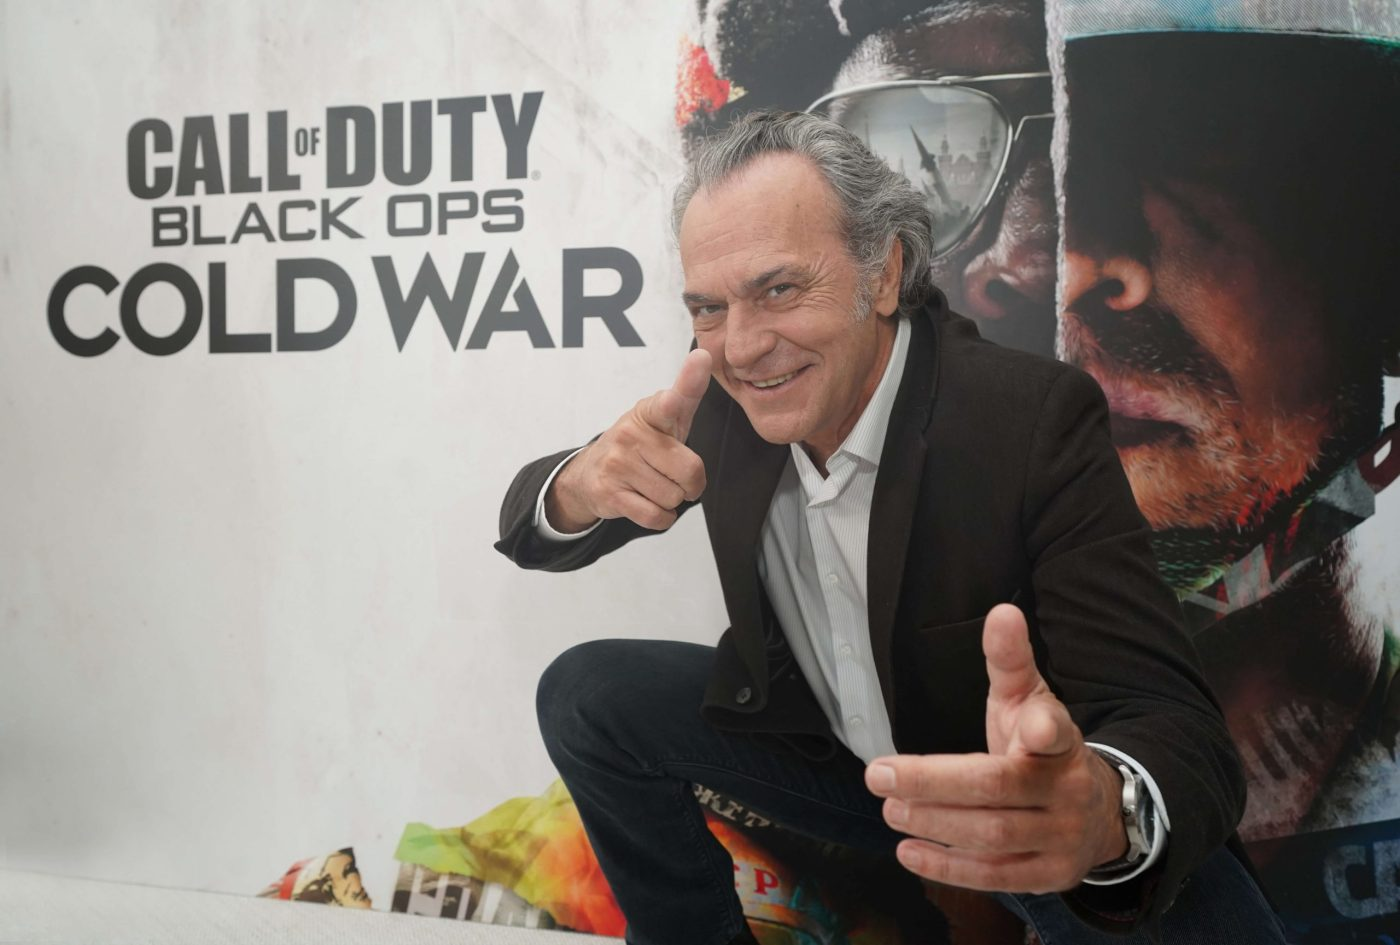 Call of Duty Black Ops Cold War Jose Coronado VII scaled